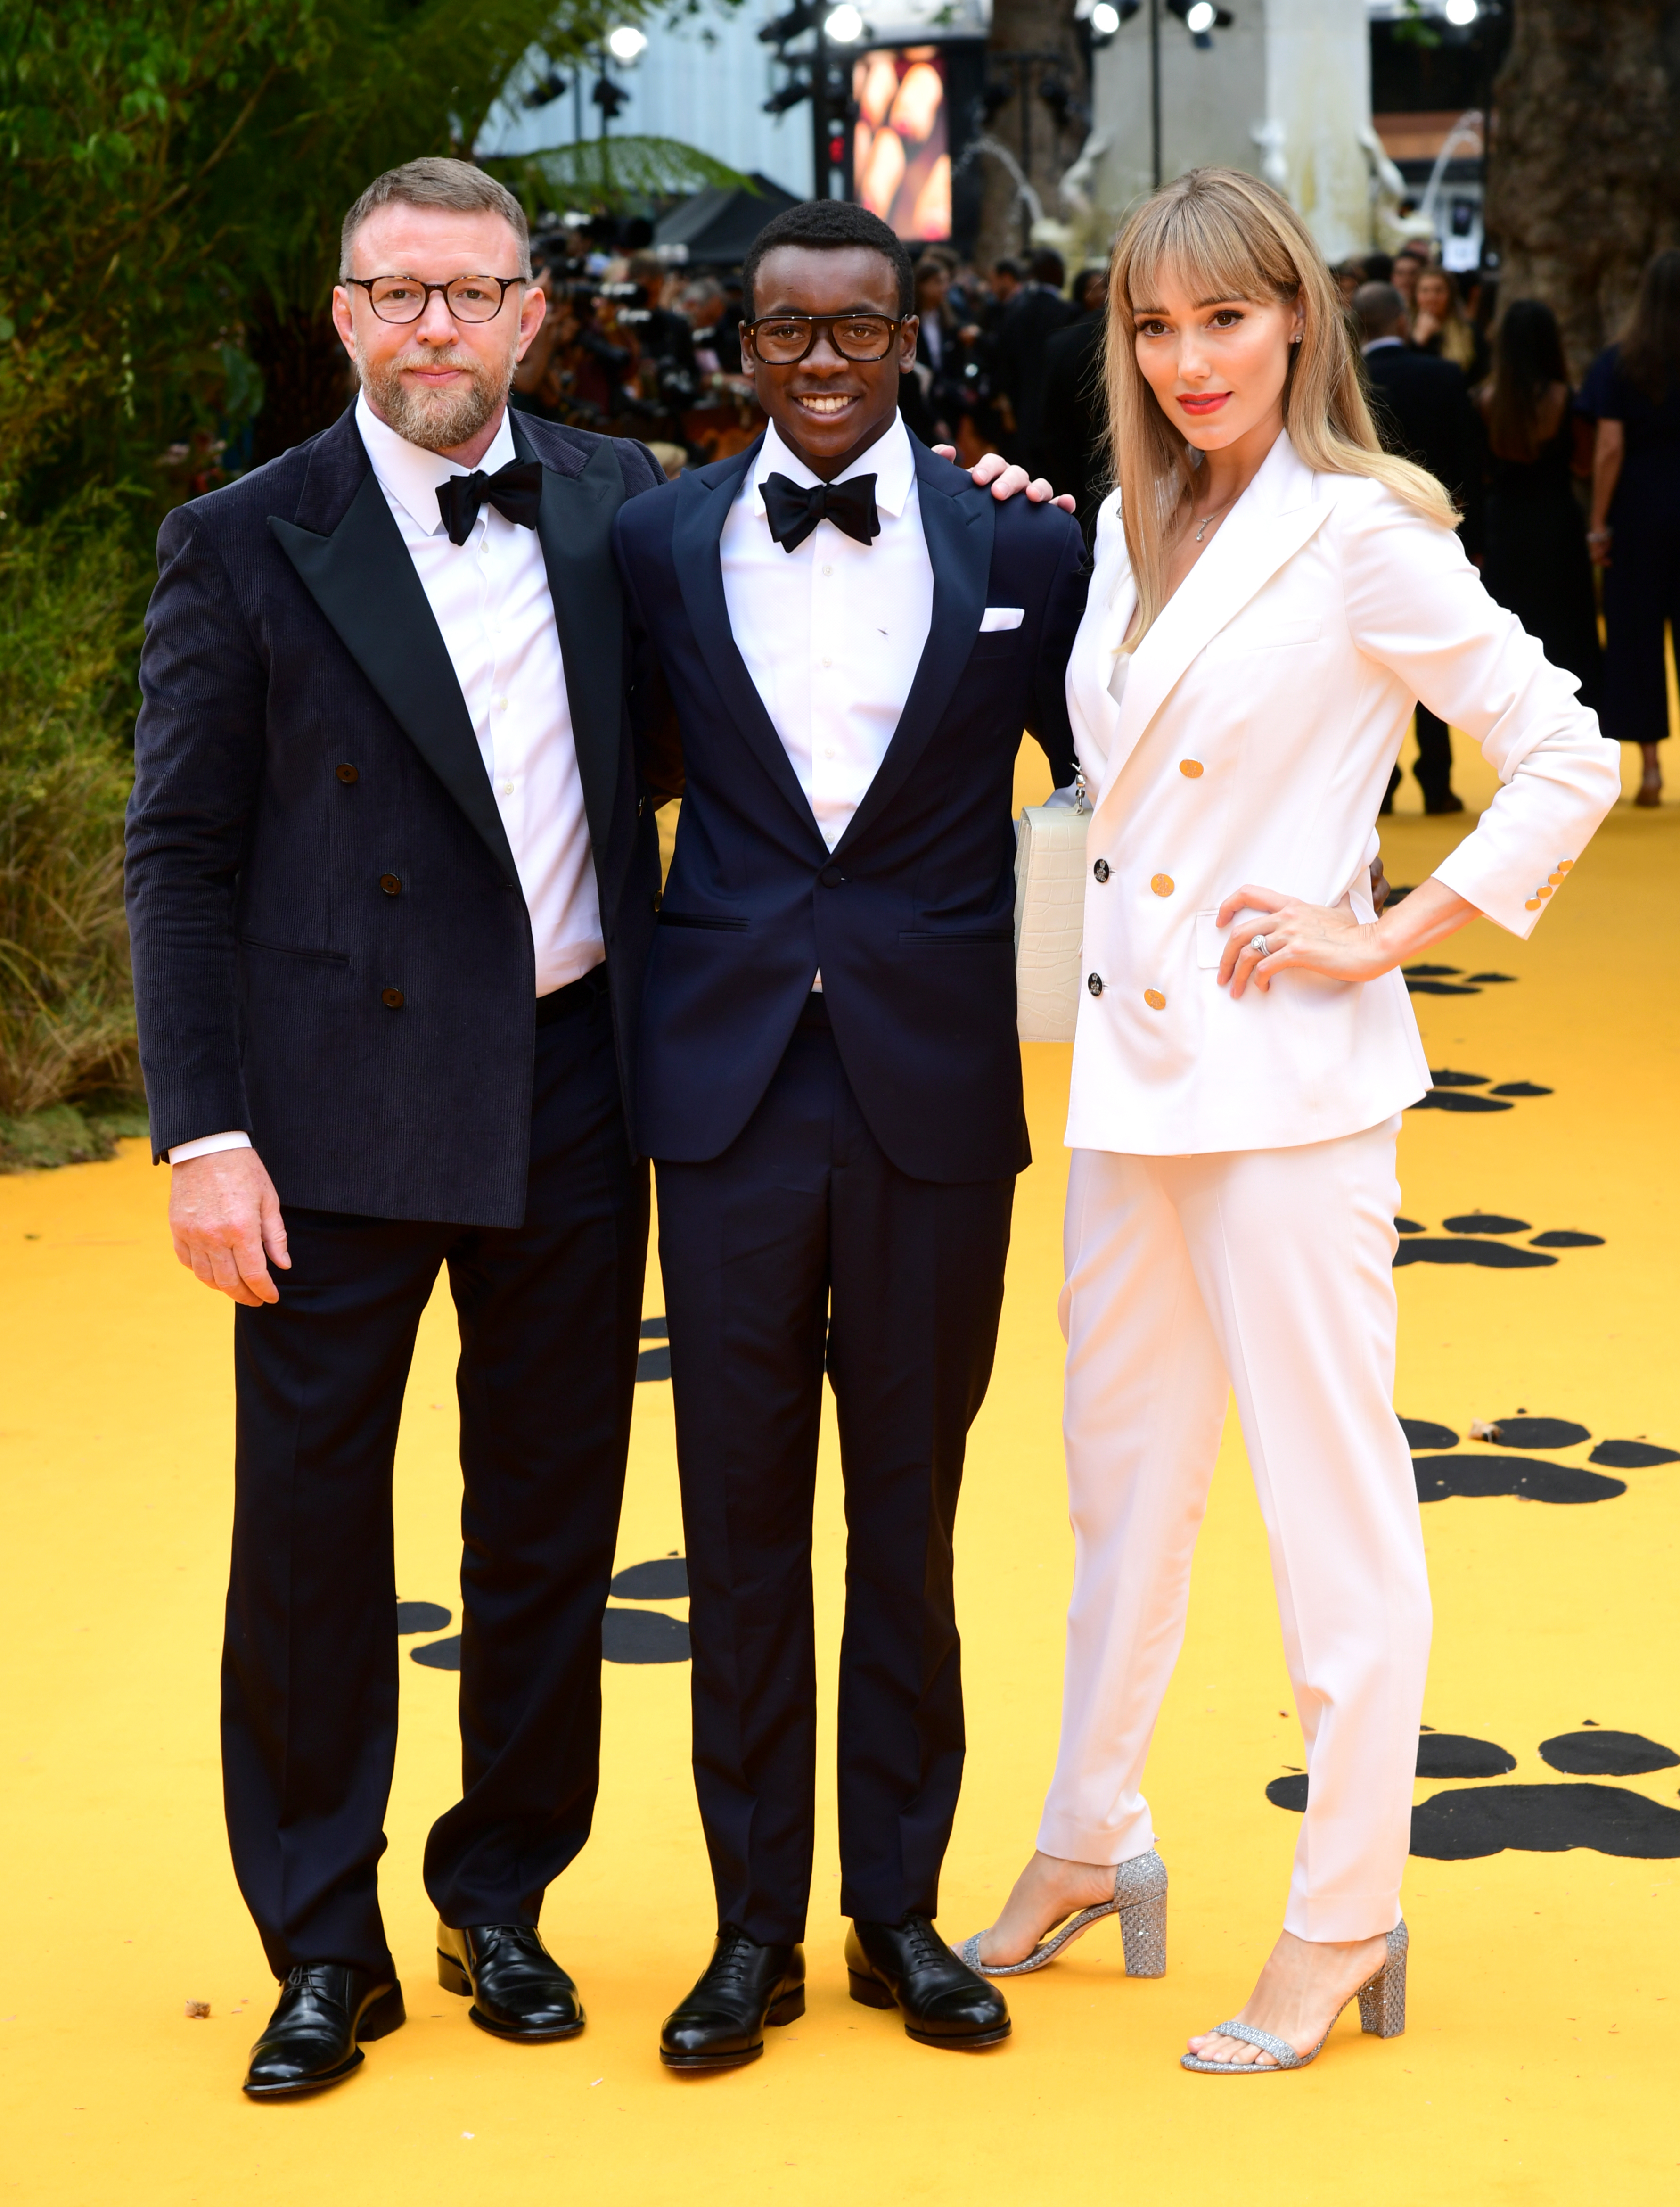 Guy Ritchie, Jacqui Ritchie and family attending Disney's The Lion King European Premiere held in Leicester Square, London.